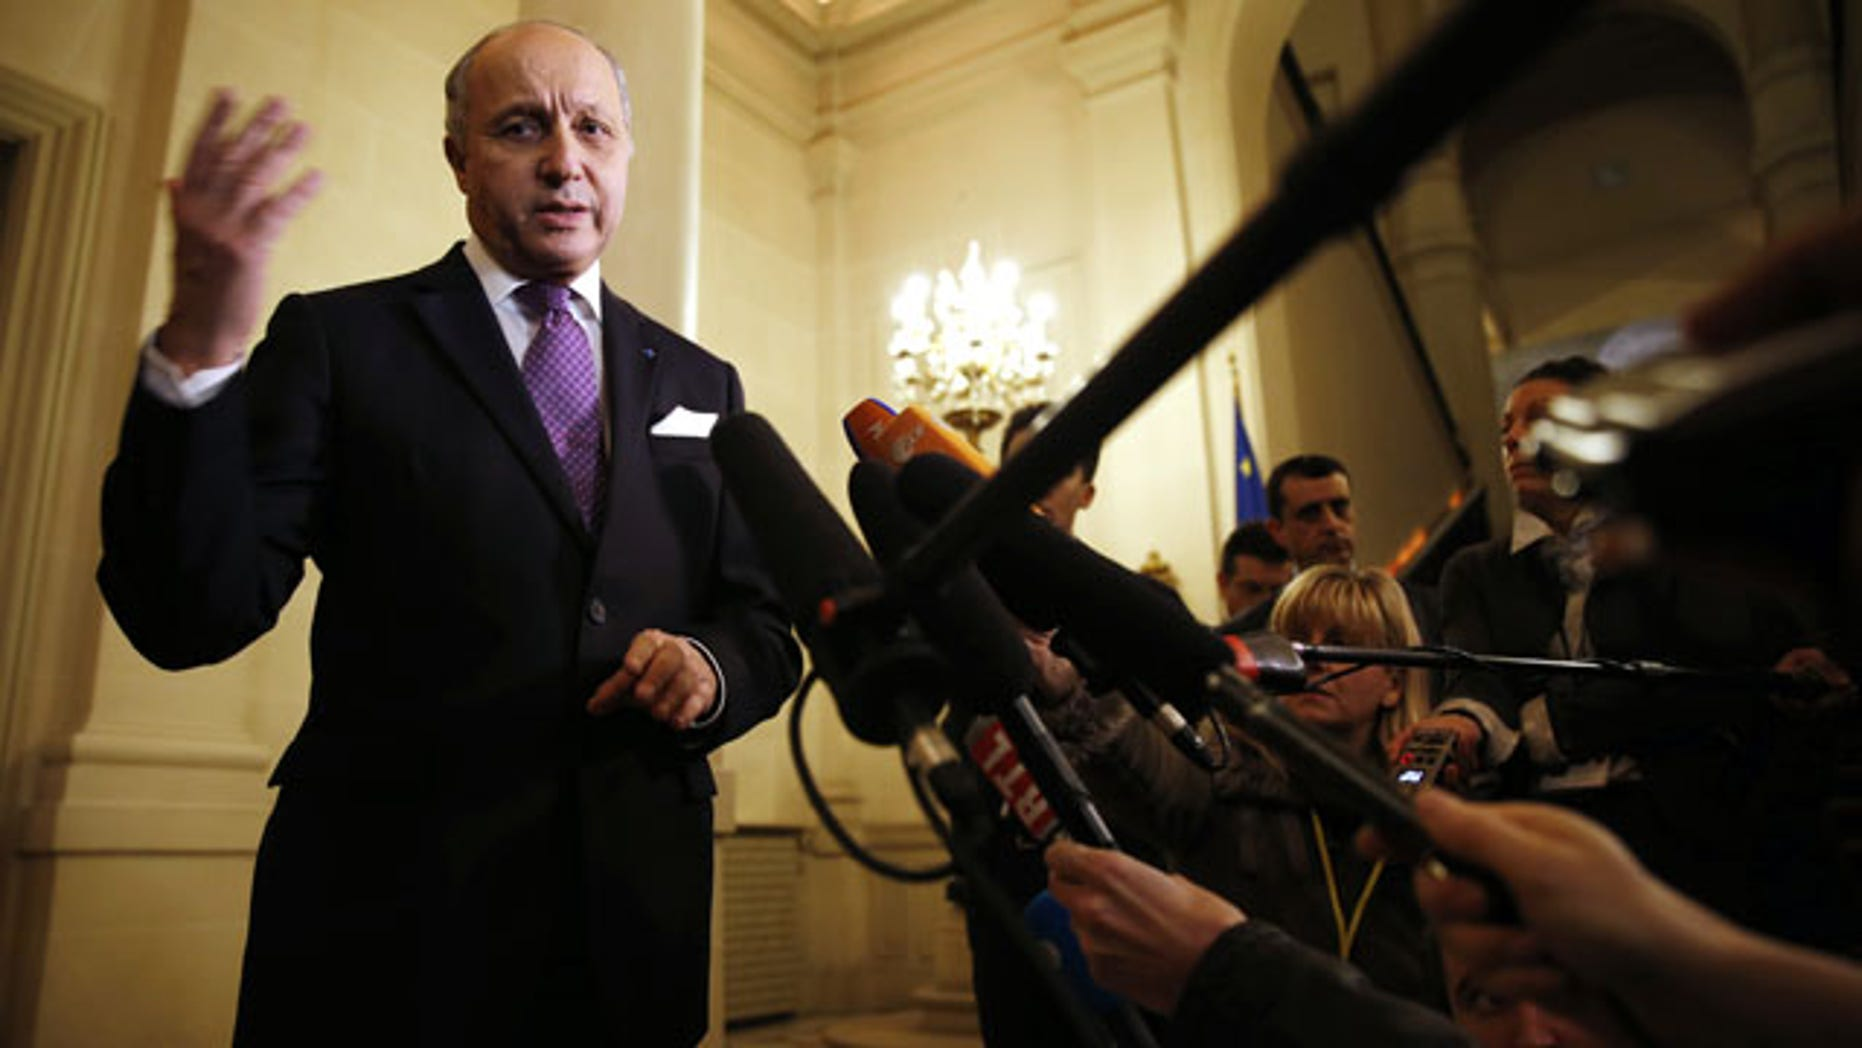 March 5, 2014: French Foreign Minister Laurent Fabius speaks to reporters after a meeting on the Ukraine crisis with U.S. Secretary of State John Kerry and other foreign ministers at the Quai d' Orsay in Paris. (AP Photo / Kevin Lamarque, pool)